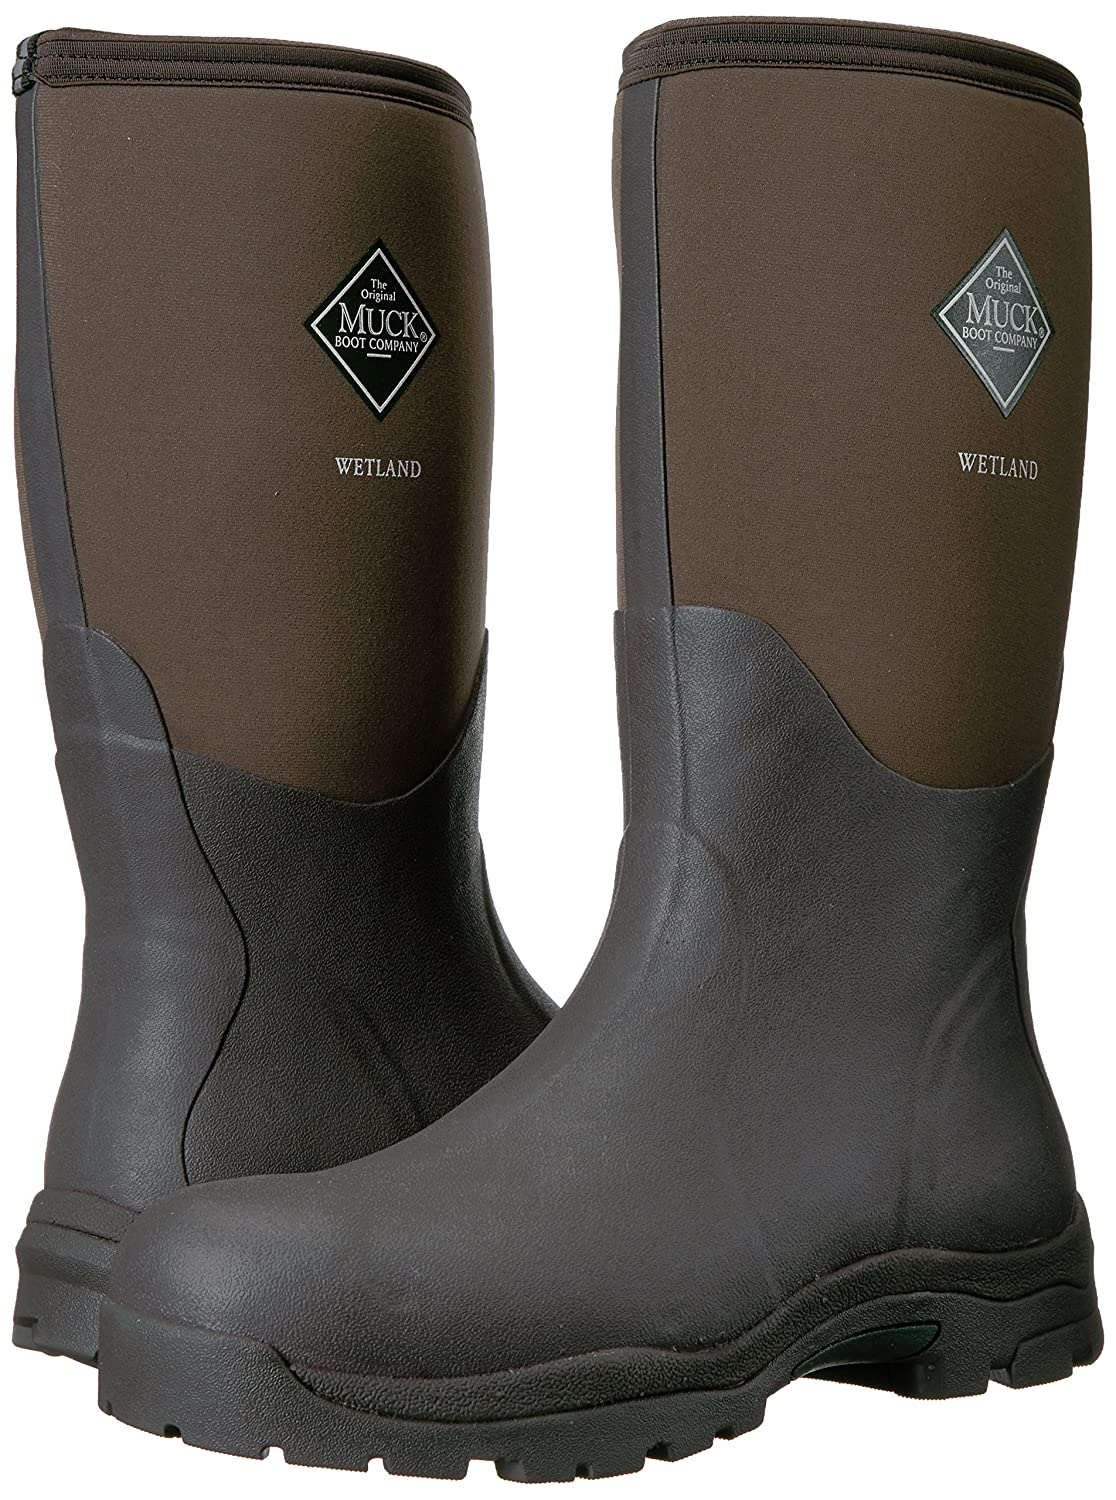 844dc6ed76f86 Amazon.com: Muck Boots Wetland Rubber Premium Women's Field Boot: Sports &  Outdoors